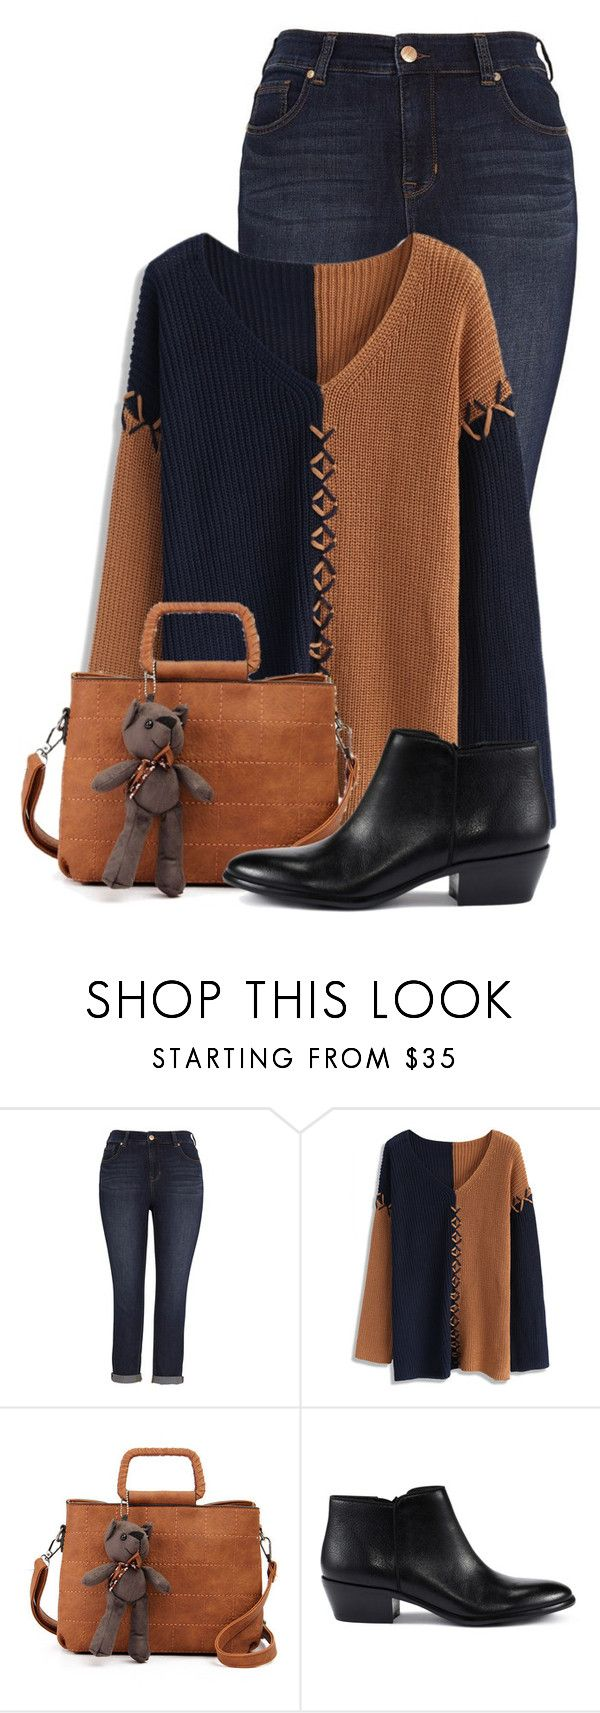 """""""Untitled #20183"""" by nanette-253 ❤ liked on Polyvore featuring Melissa McCarthy Seven7, Chicwish and Sam Edelman"""